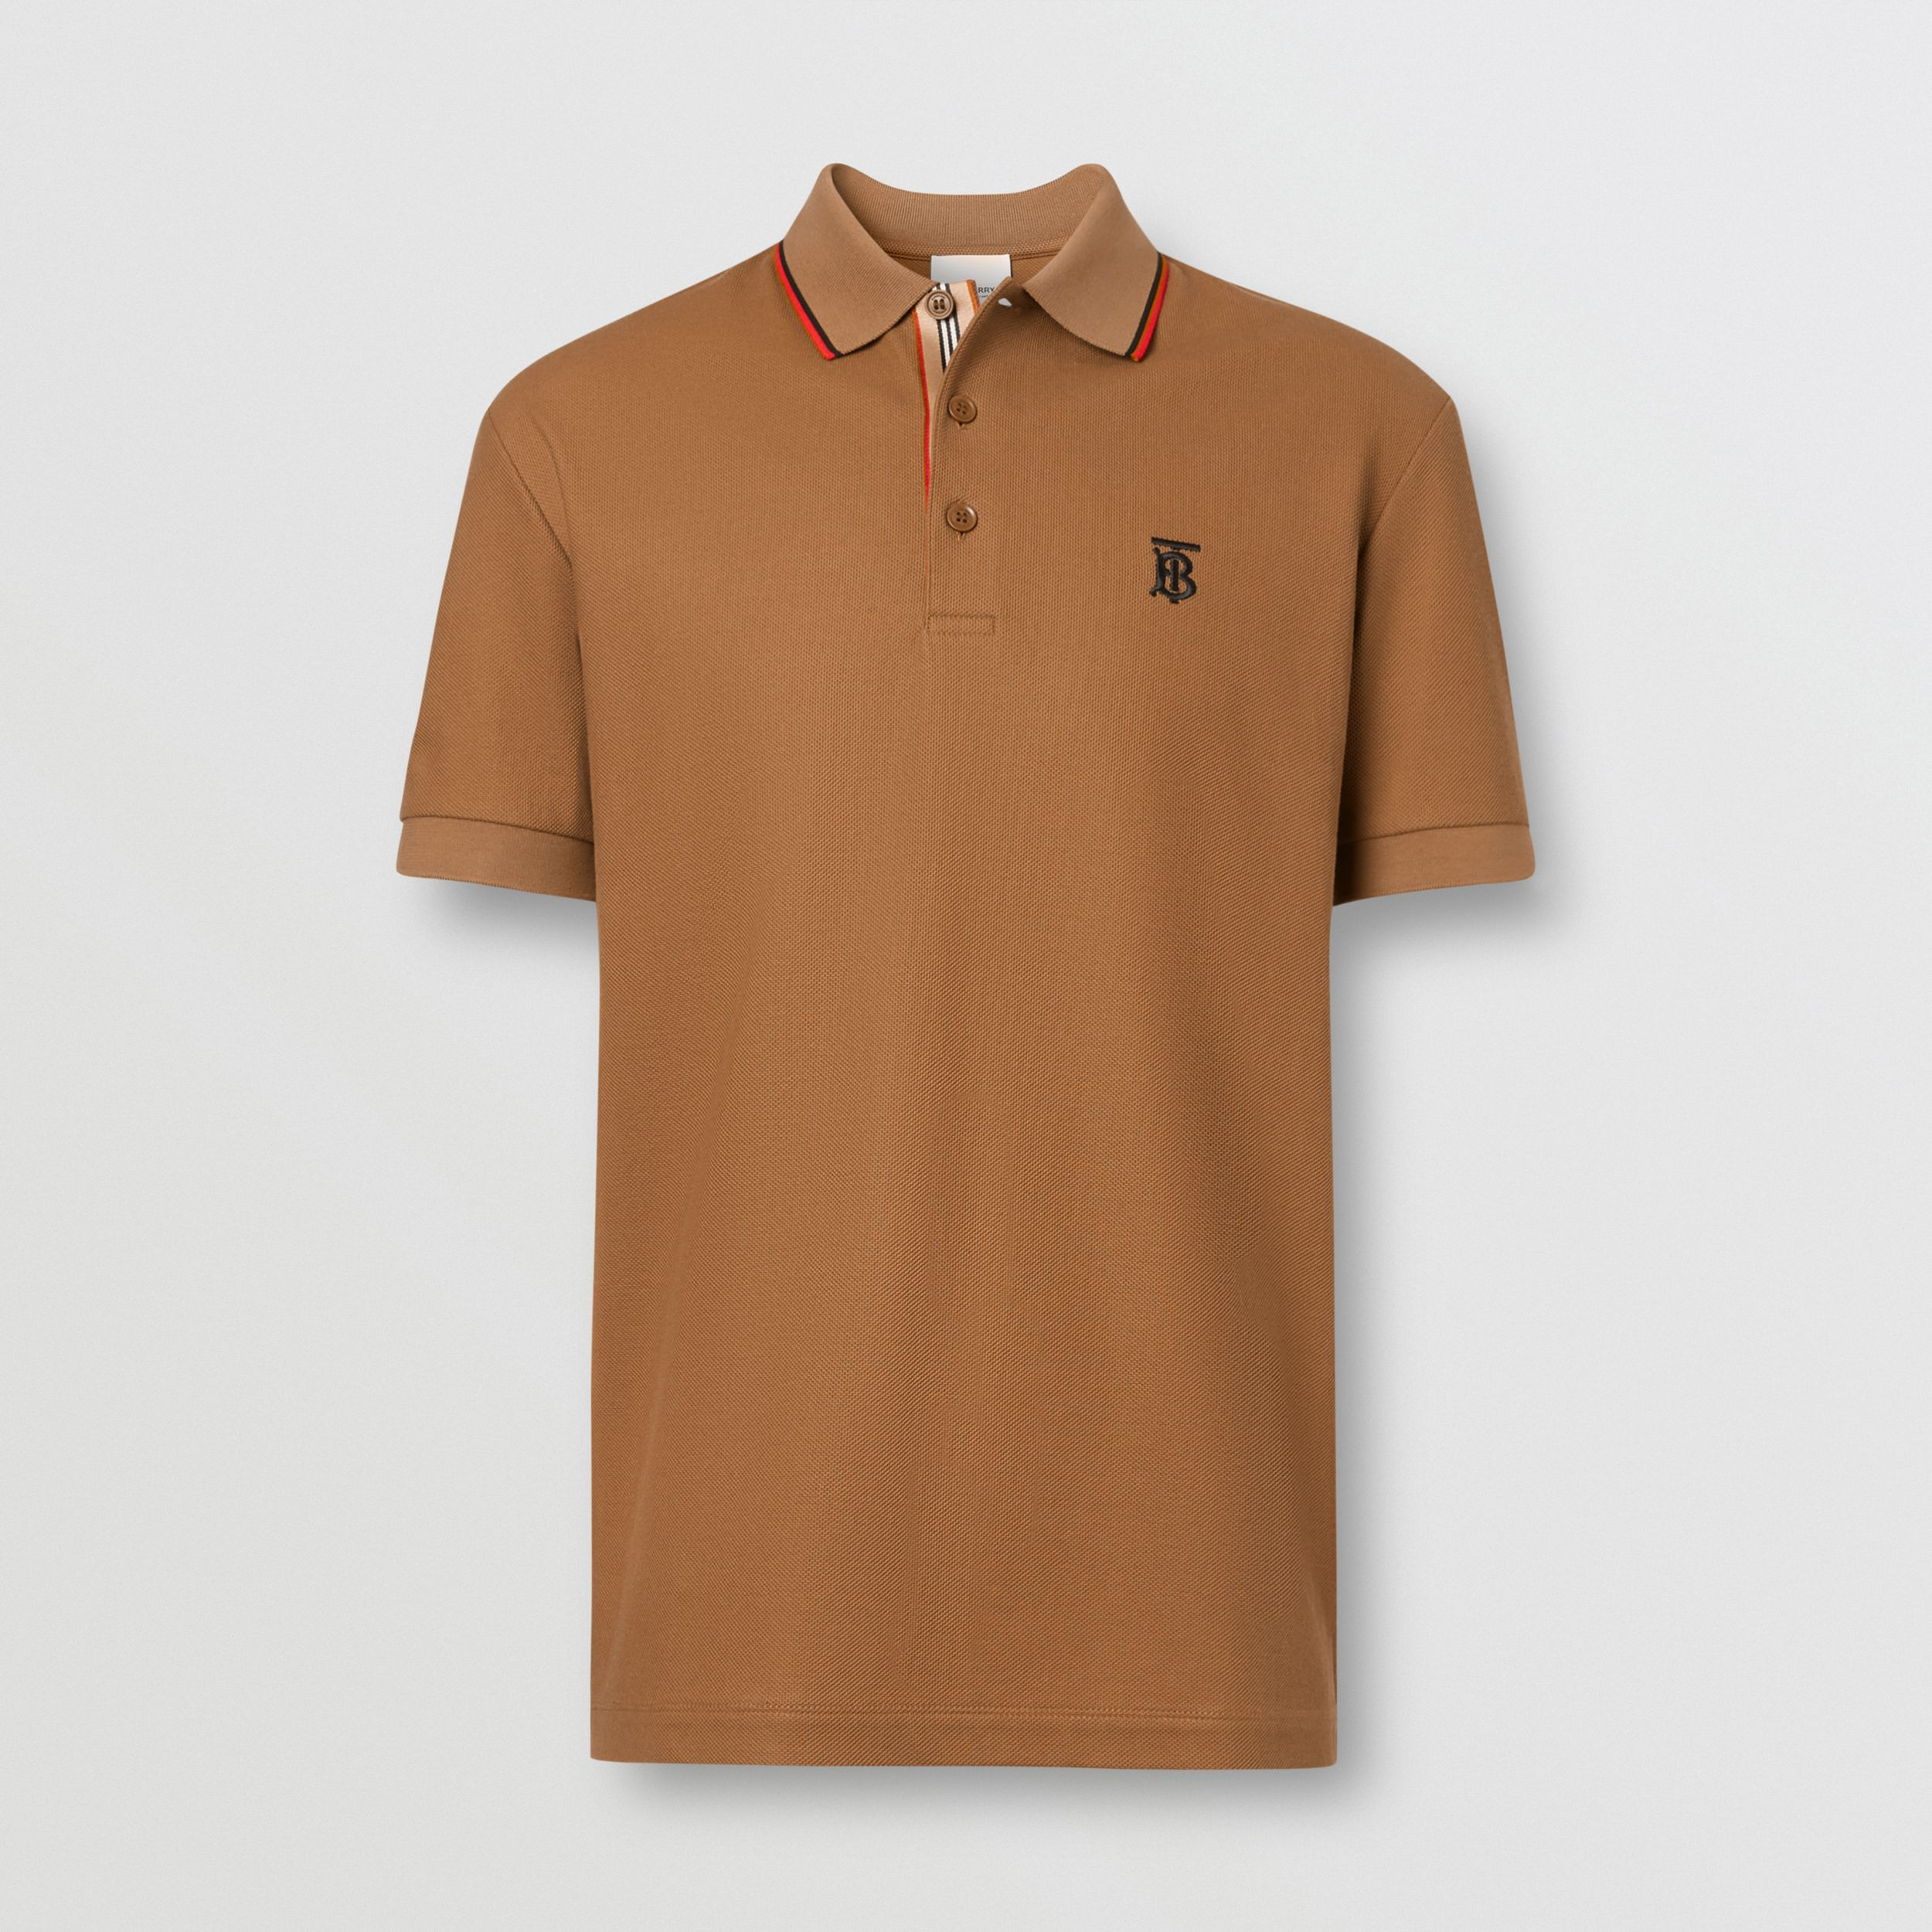 Monogram Motif Cotton Piqué Polo Shirt in Warm Brown - Men | Burberry - 3